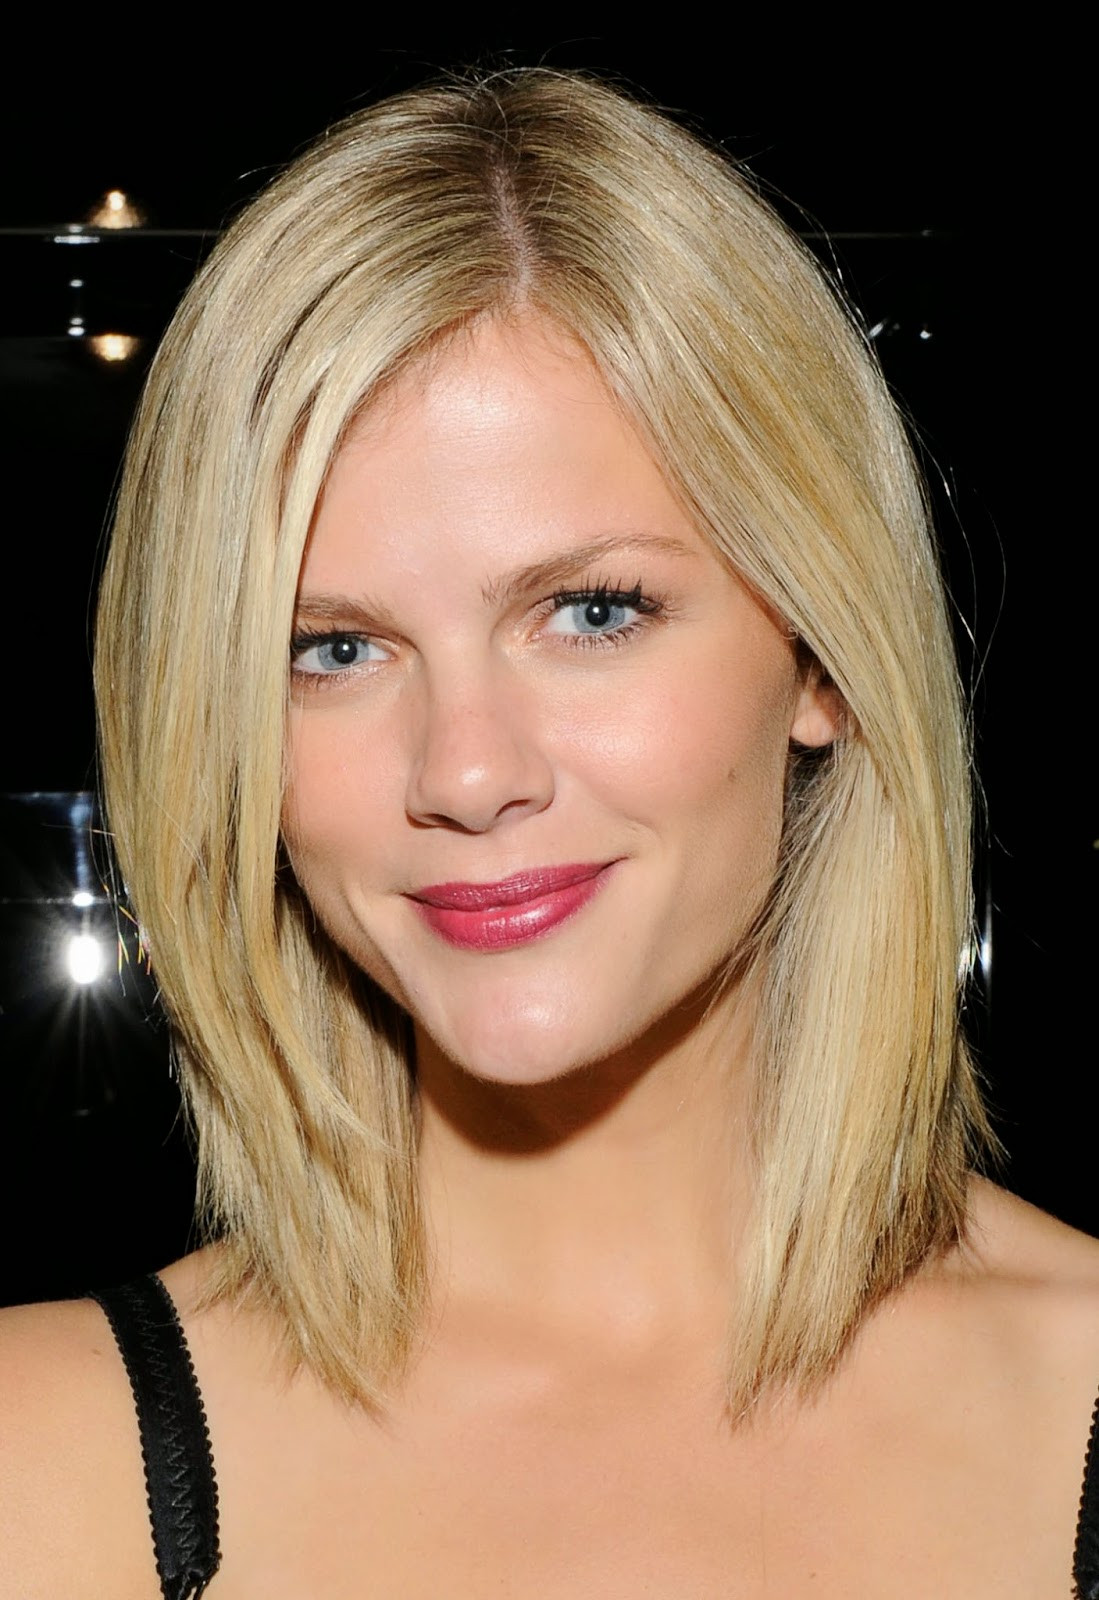 Best ideas about A Bob Hairstyle . Save or Pin Wedge Hairstyle 2014 Hairstyles For Women Now.